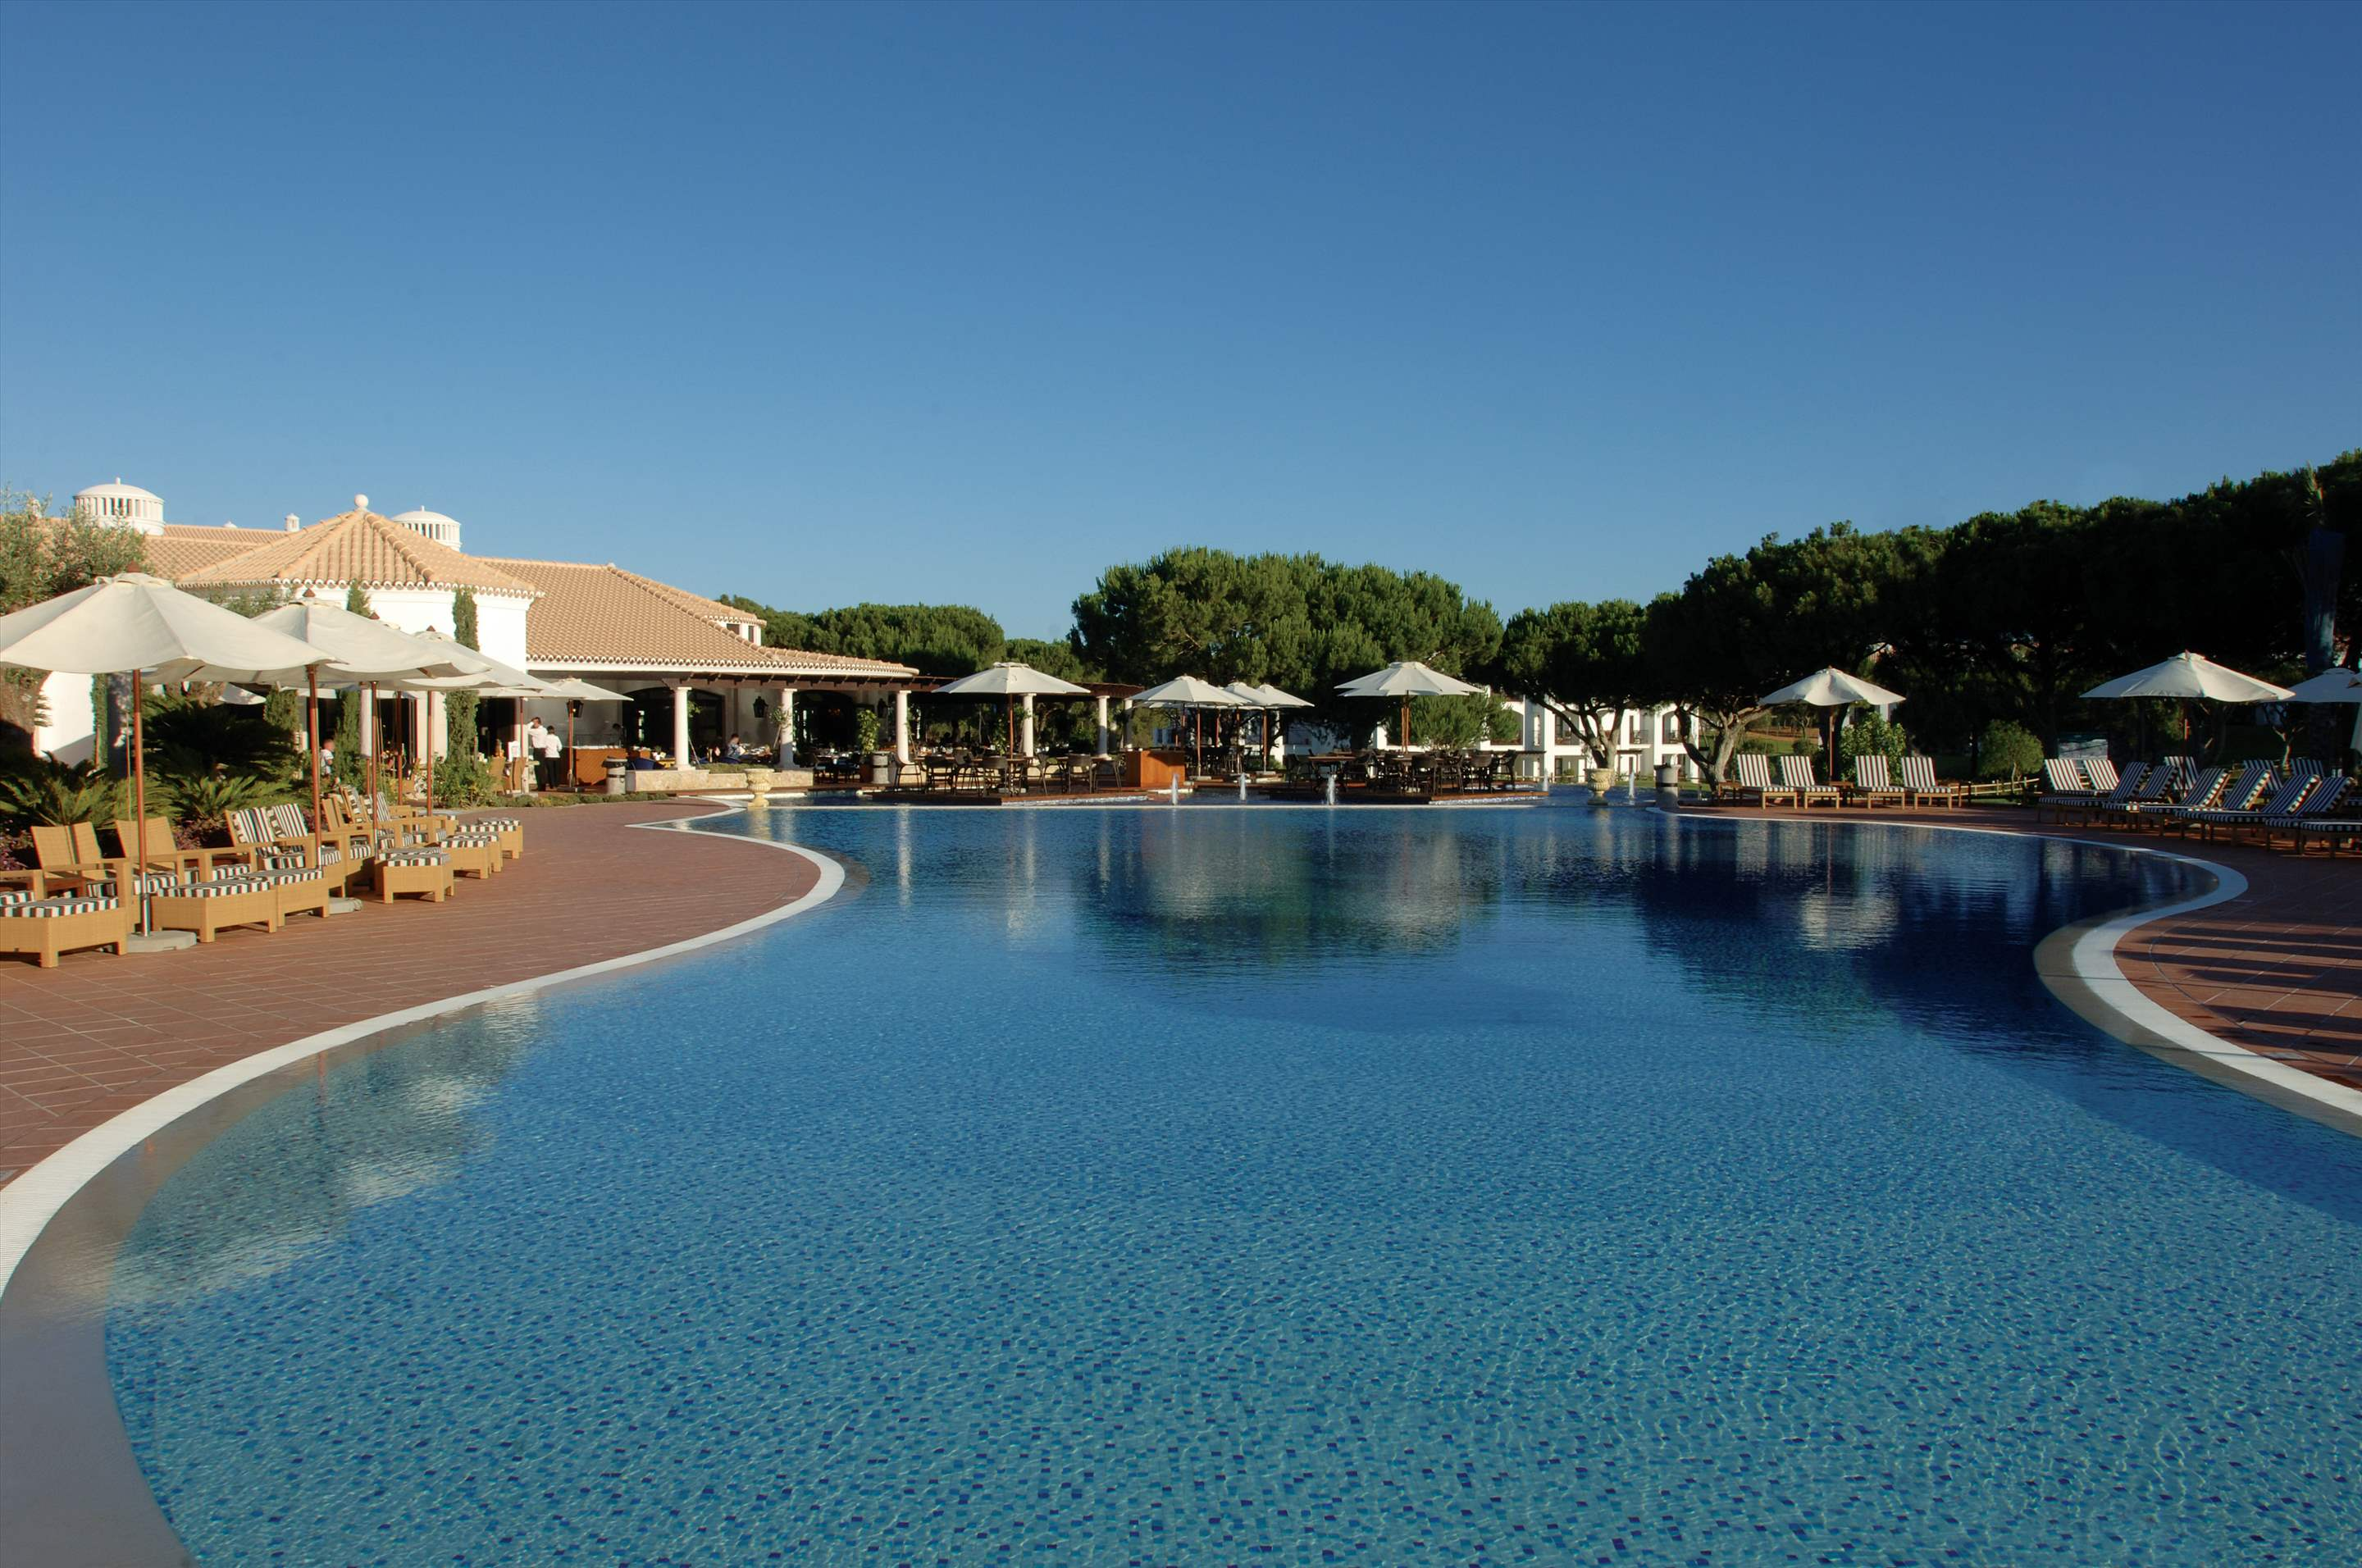 Pine Cliffs Residence, Penthouse 2 bed luxury suite, 2 bedroom apartment in Pine Cliffs Resort, Algarve Photo #24